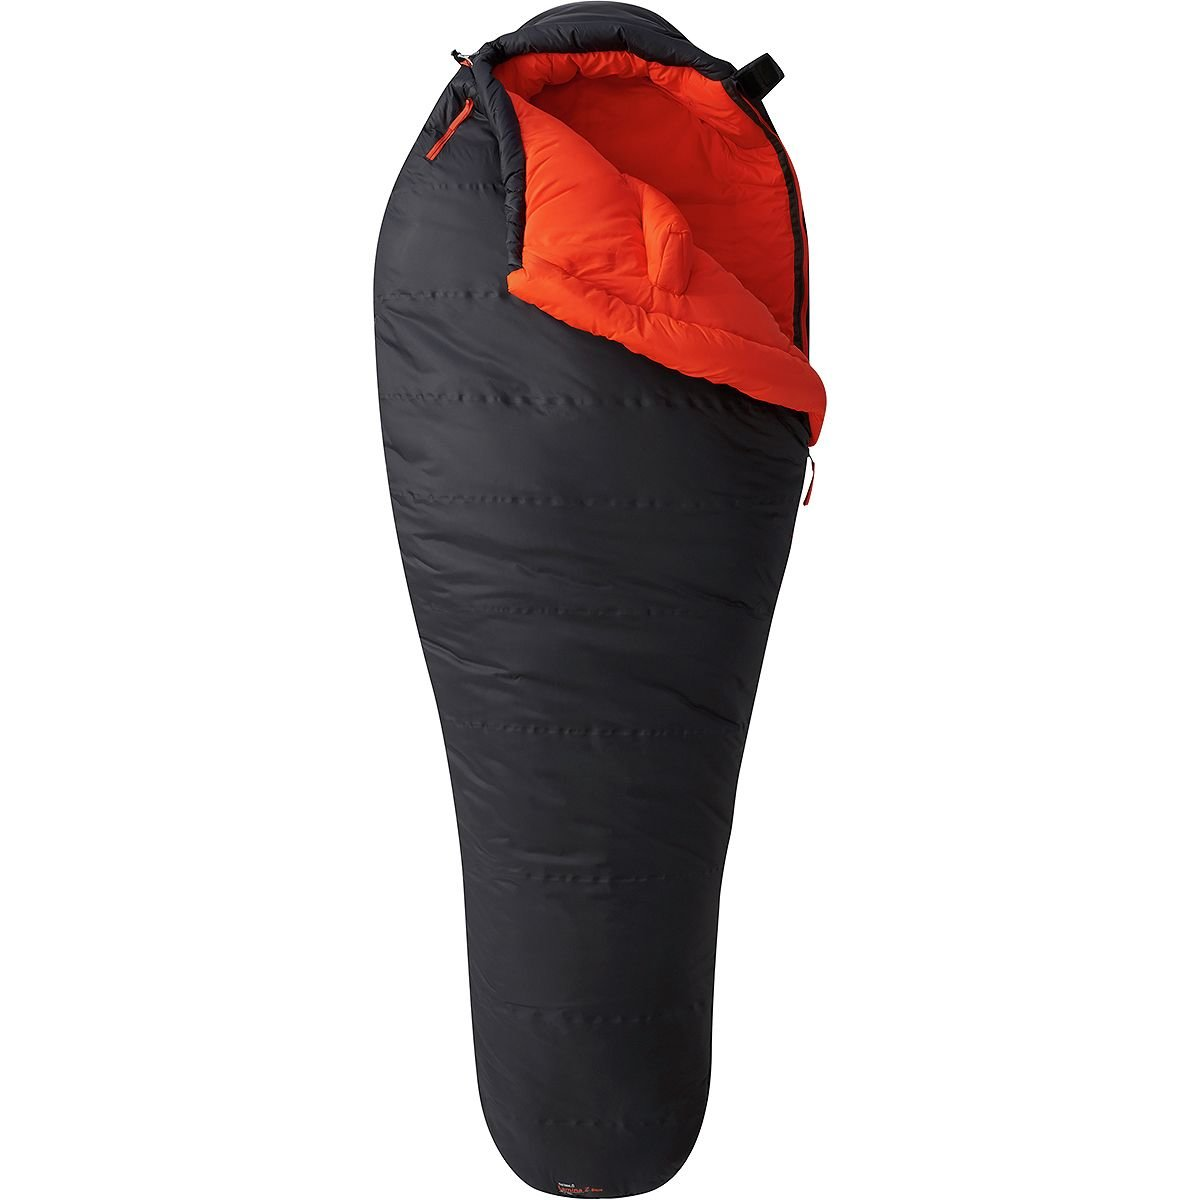 An image of Mountain Hardwear Lamina Z Blaze Polyester Sleeping Bag